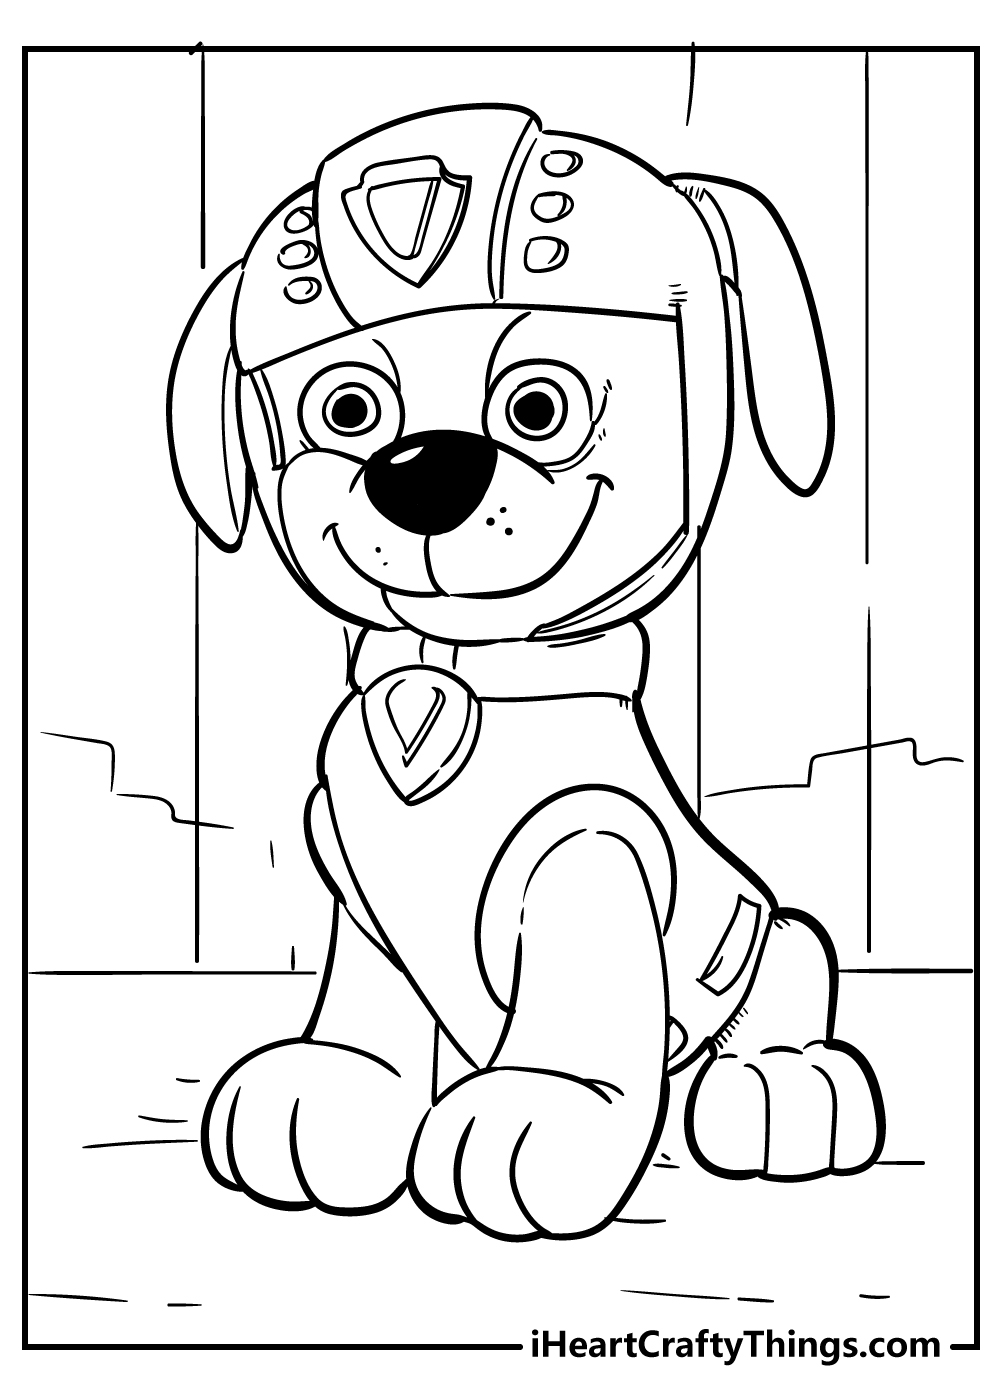 black and white paw patrol colouring pages for kids